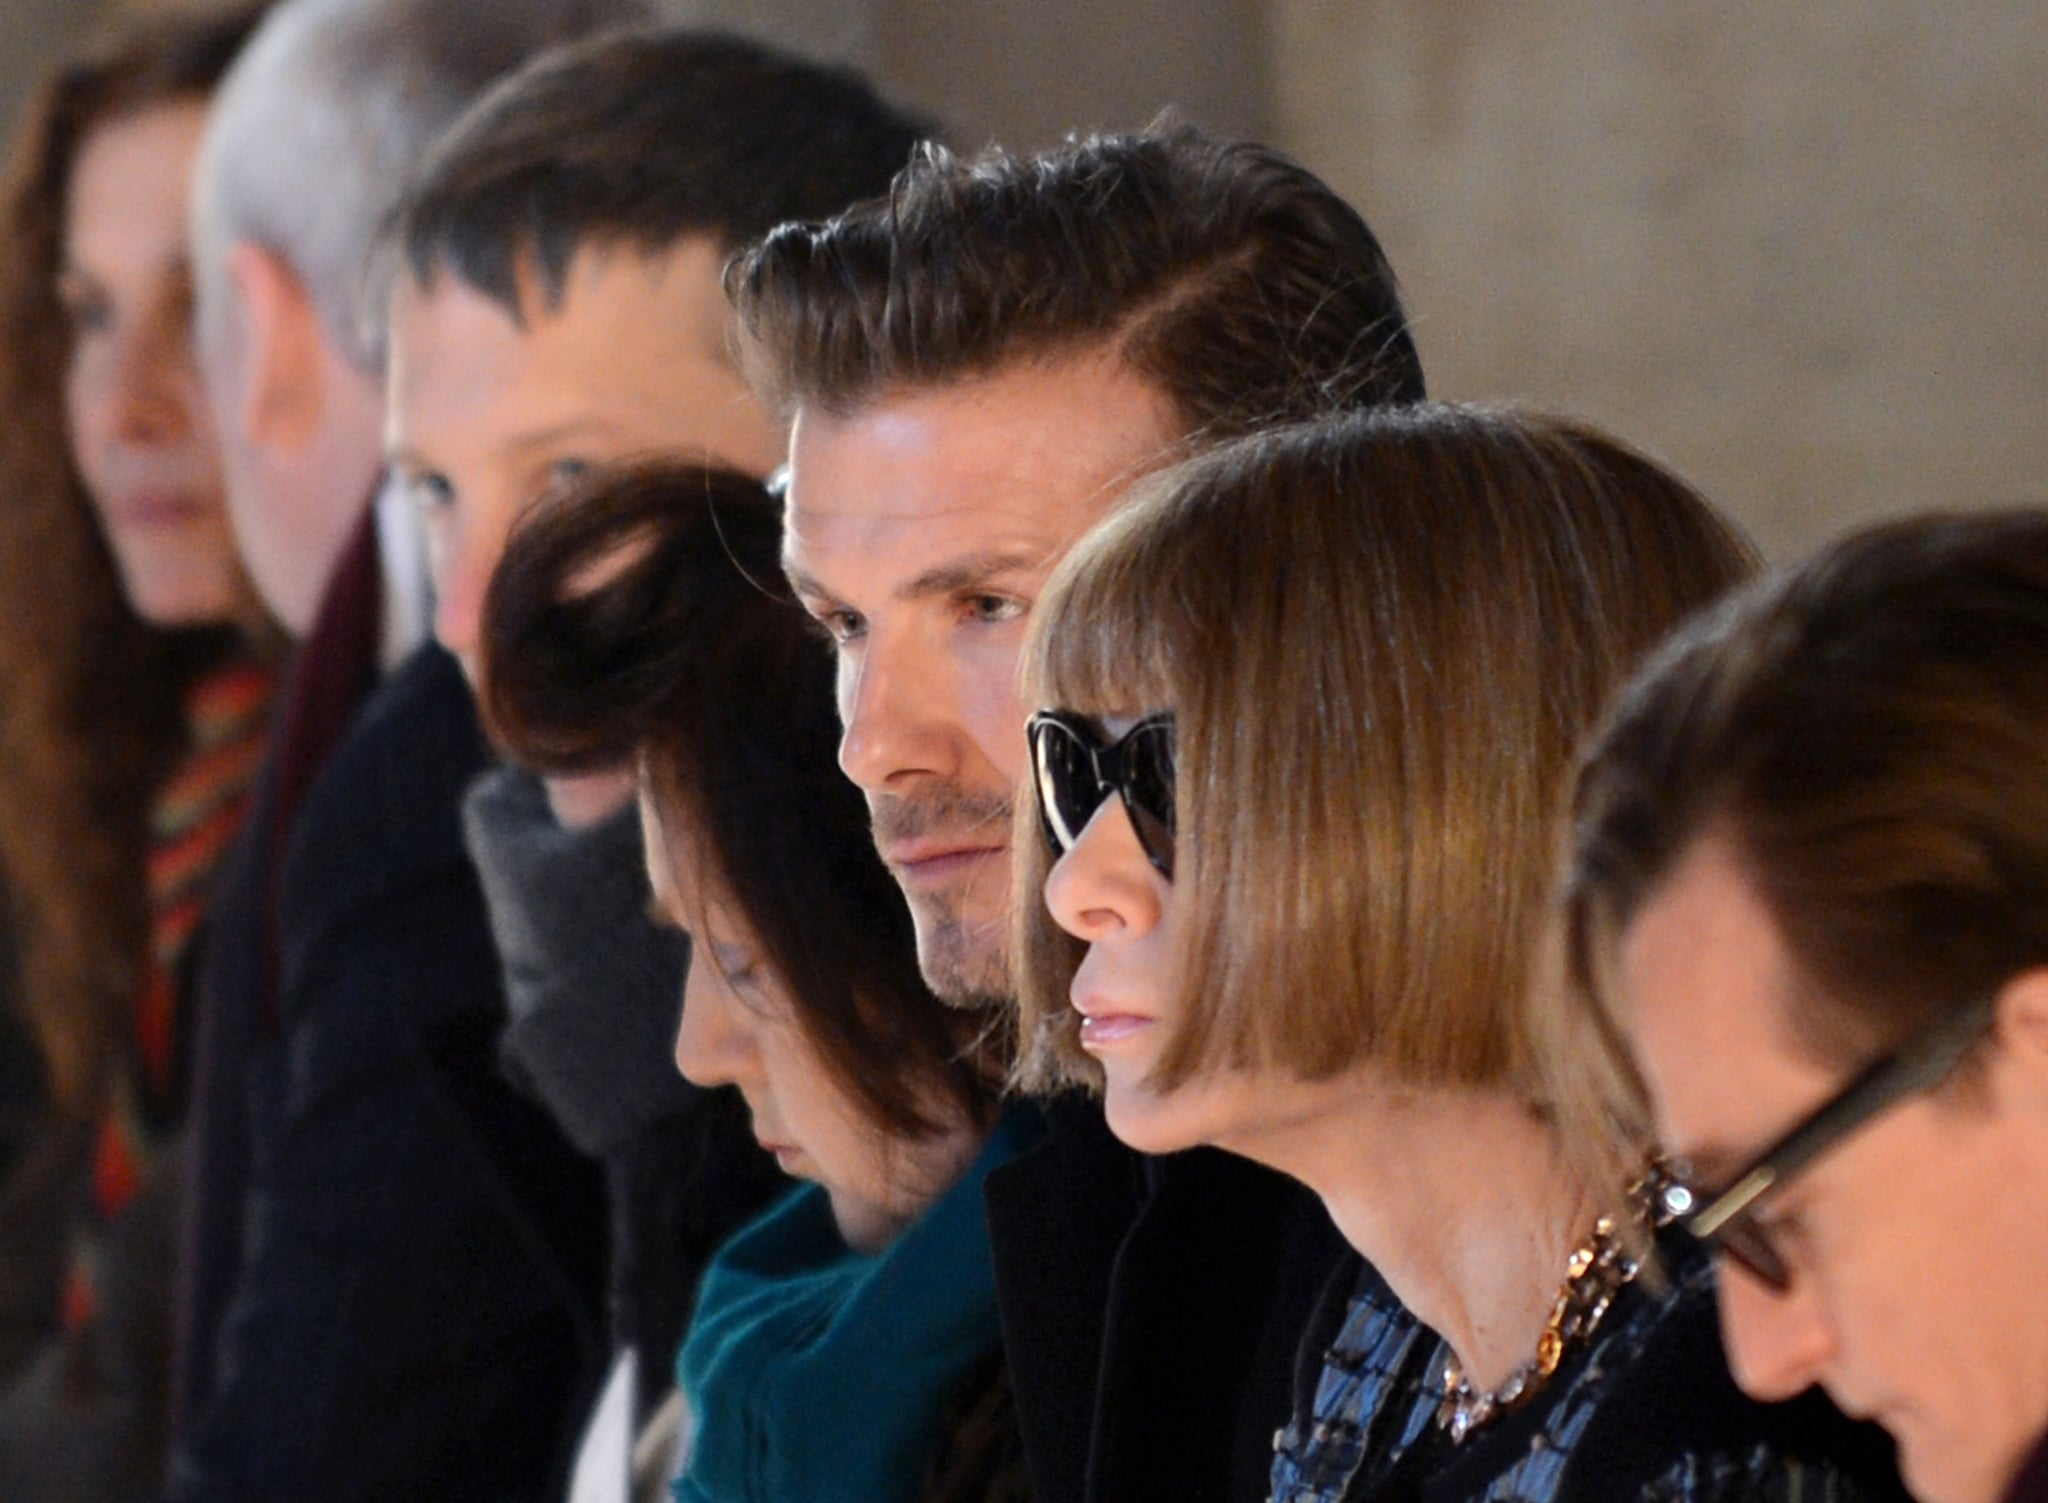 Anna Wintour and David Beckham were paired up again to watch the Victoria Beckham Fall 2013 show. David Beckham has yet to land a Vogue cover of his own, but we're content with all his most recent stylish activity.